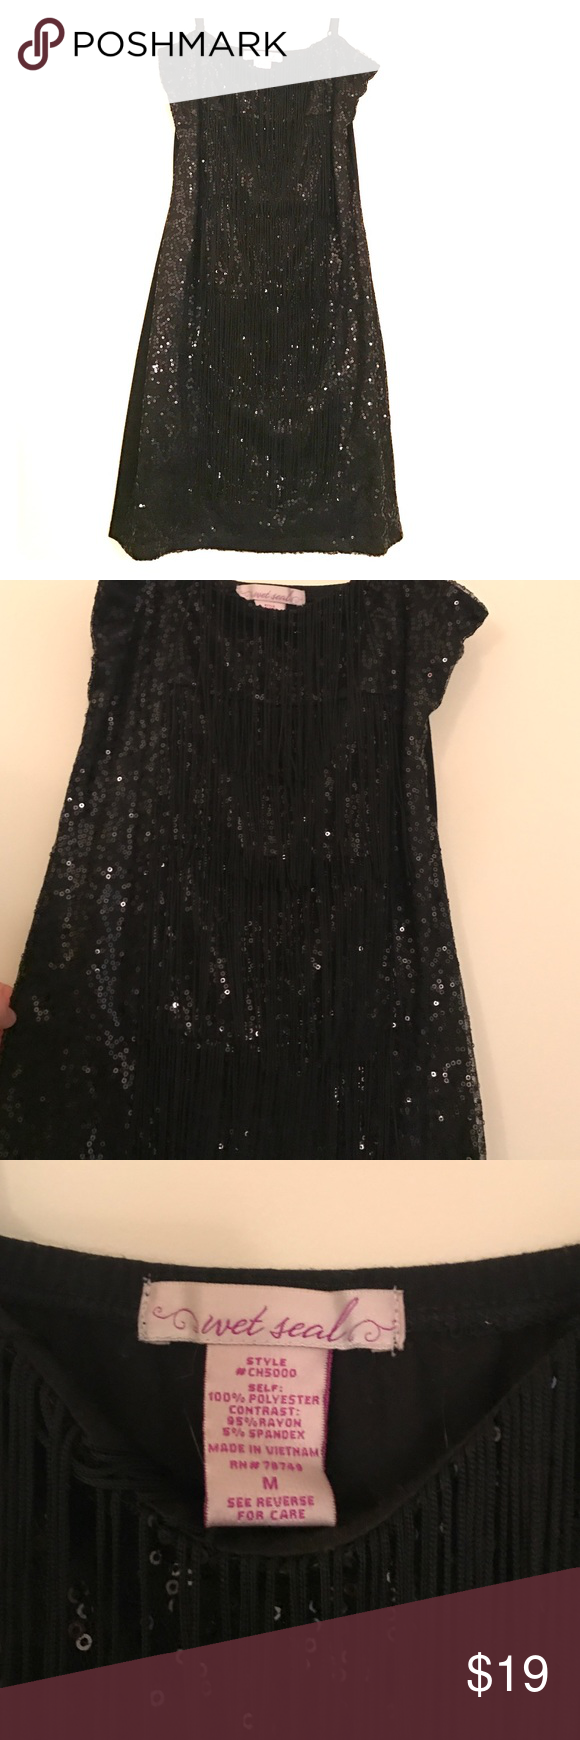 Wet Seal little black dress A closet essential- sexy and sparkly Wet Seal mini dress with fringe. Absolutely adorable, worn once! Size Medium. Wet Seal Dresses Mini